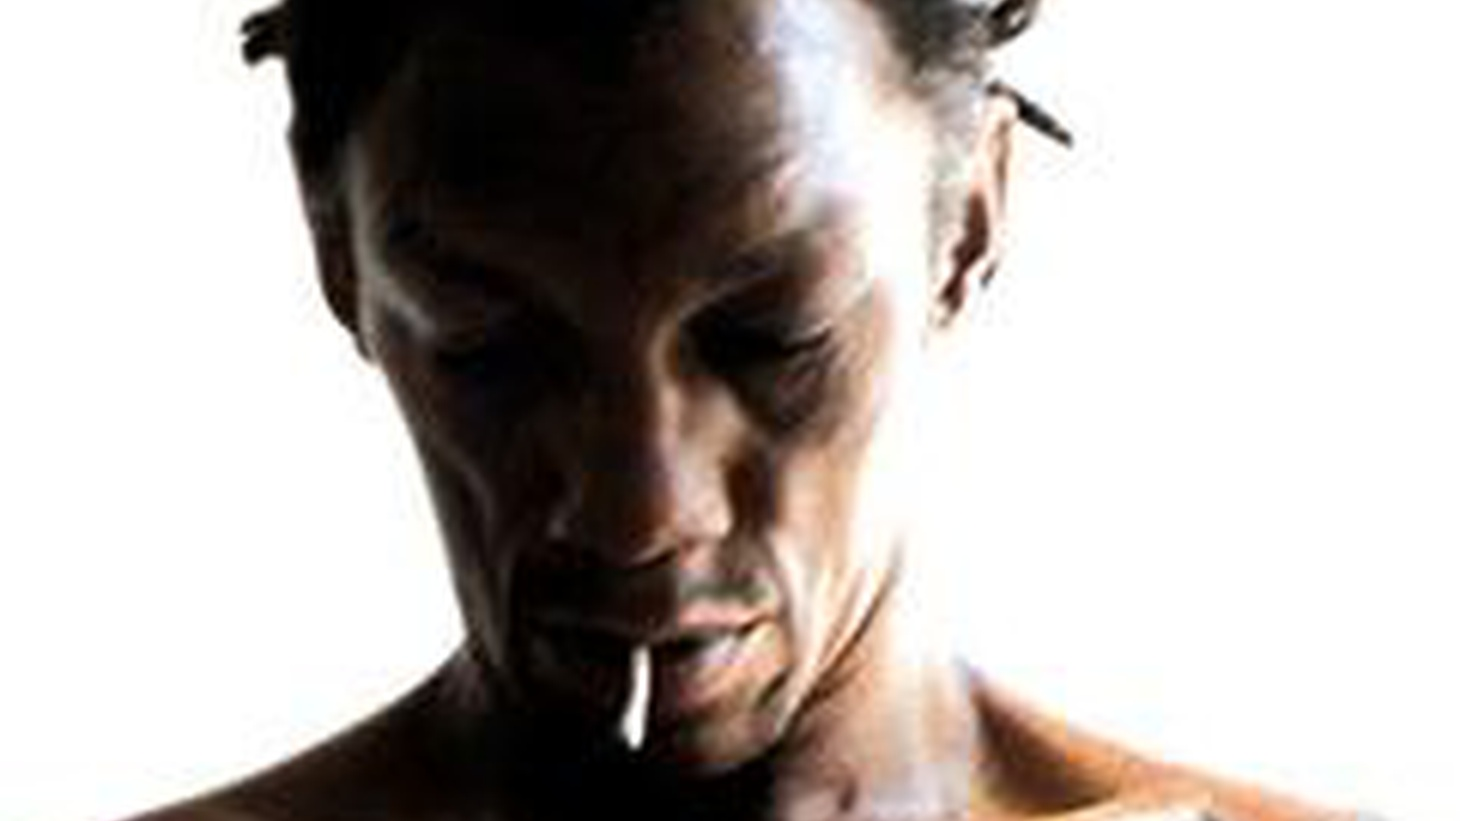 You'll be surprised how contemporary Tricky's signature mix of menace and seduction sounds after his more than 20 years in (and out of) the spotlight.